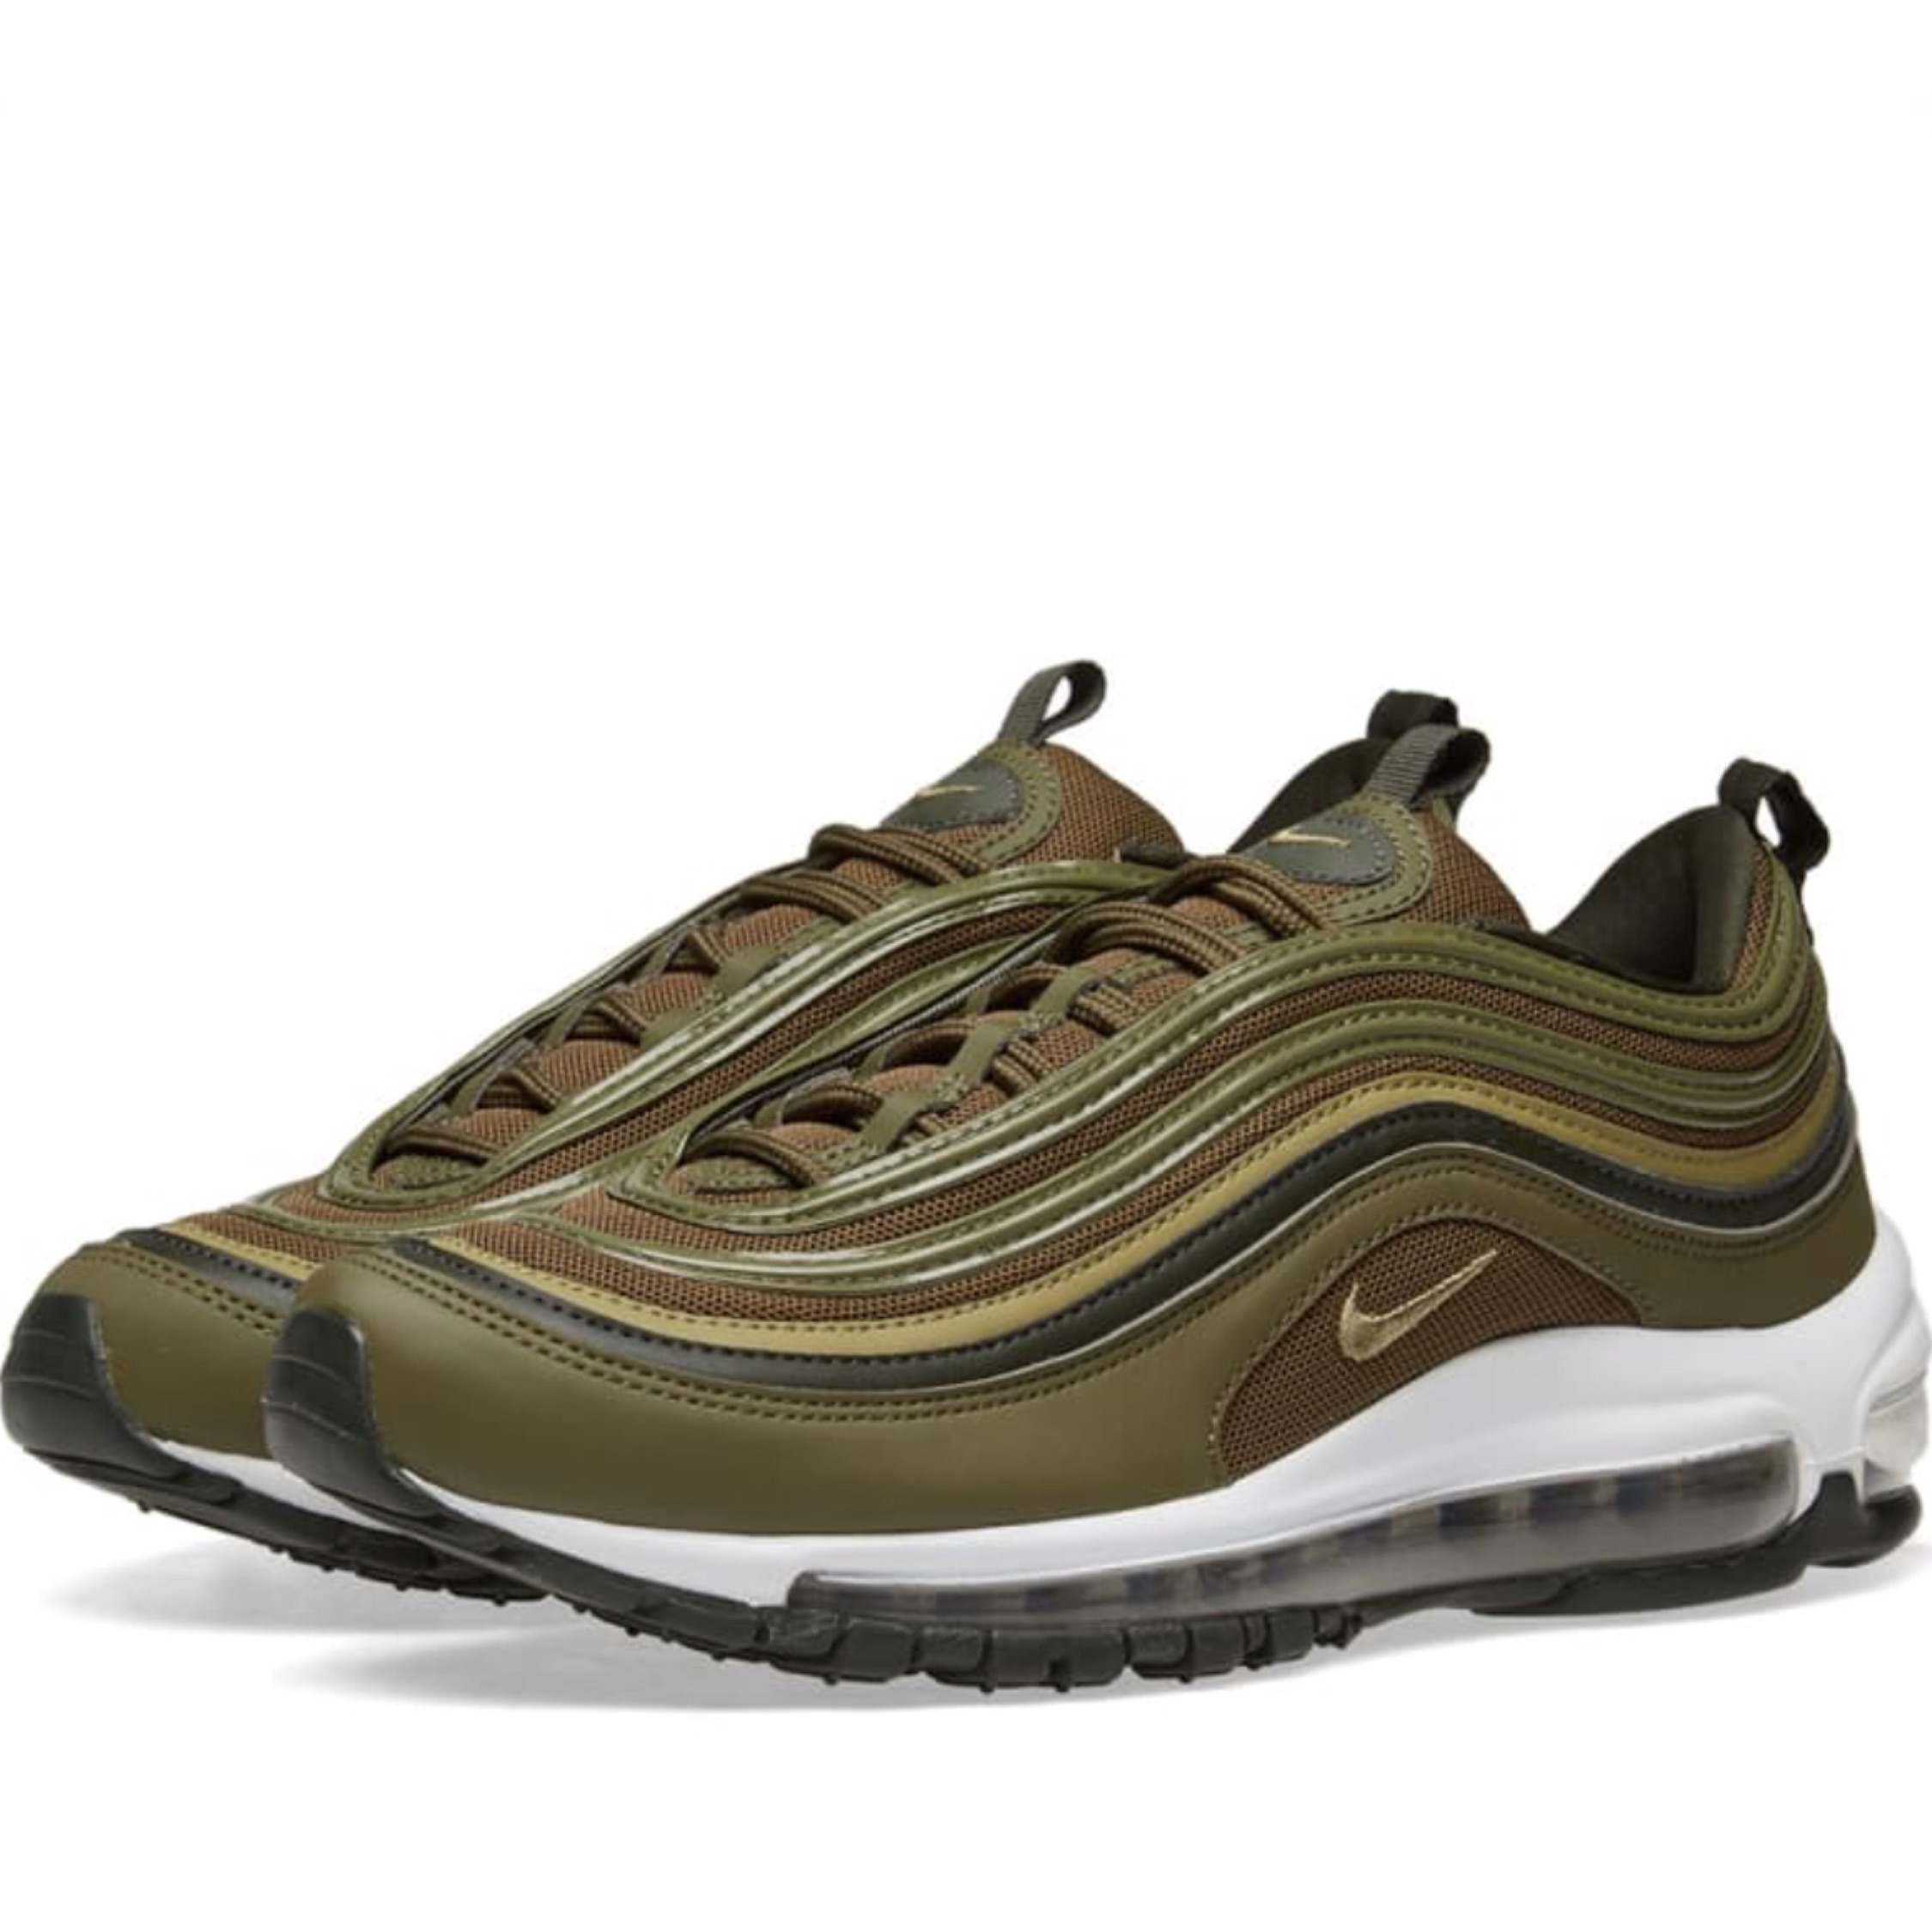 Air Max 97 Olive Green Woman